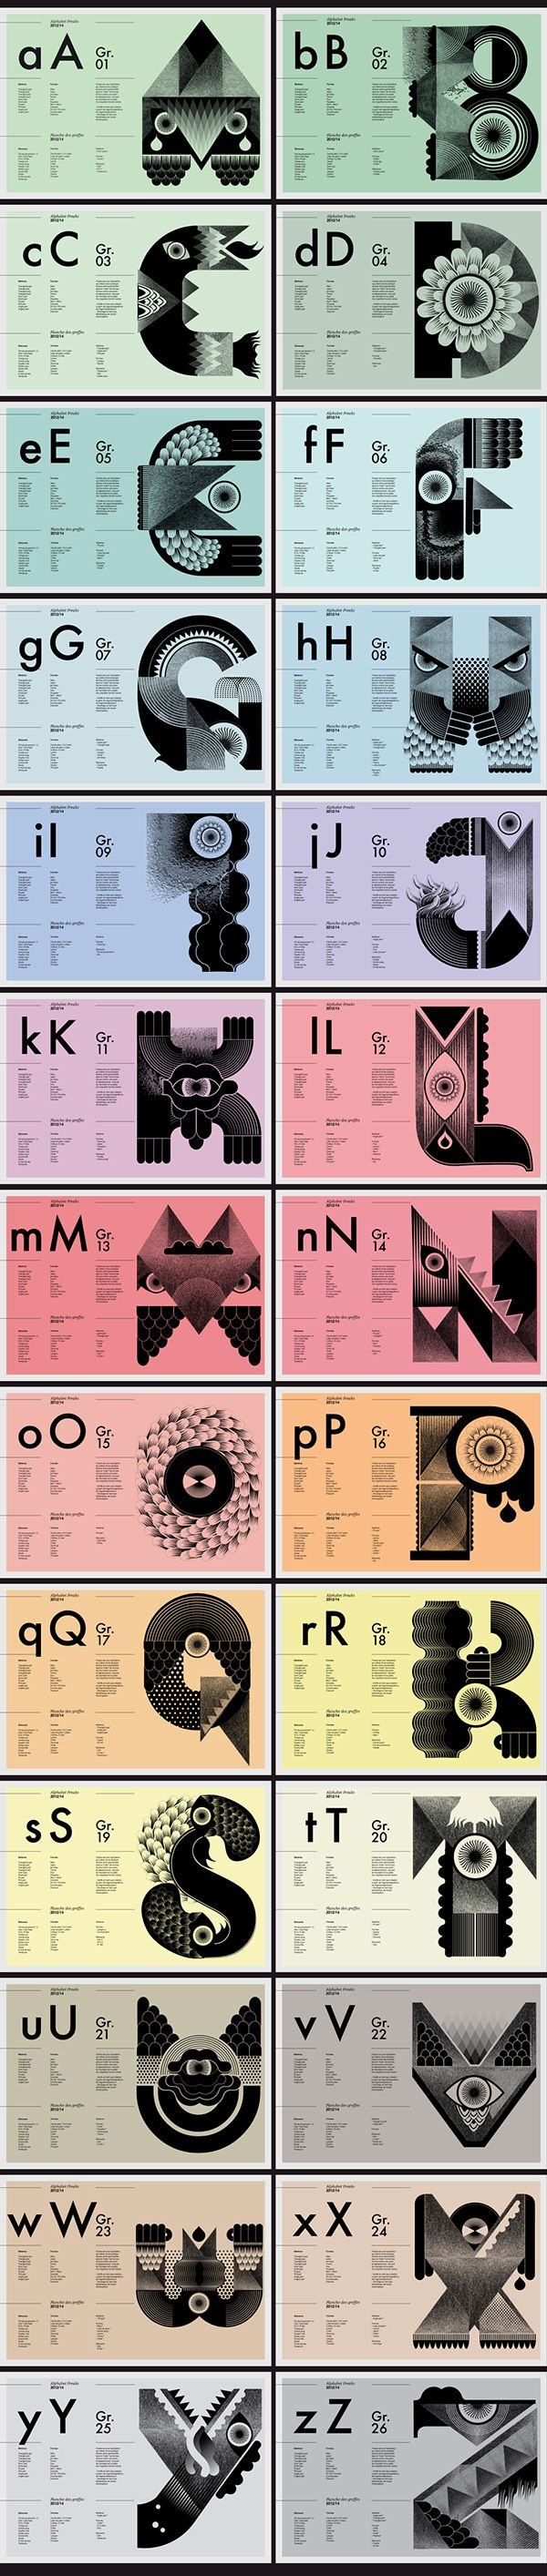 Typo - Freaks #Alphabet by Studio My Name is Wendy